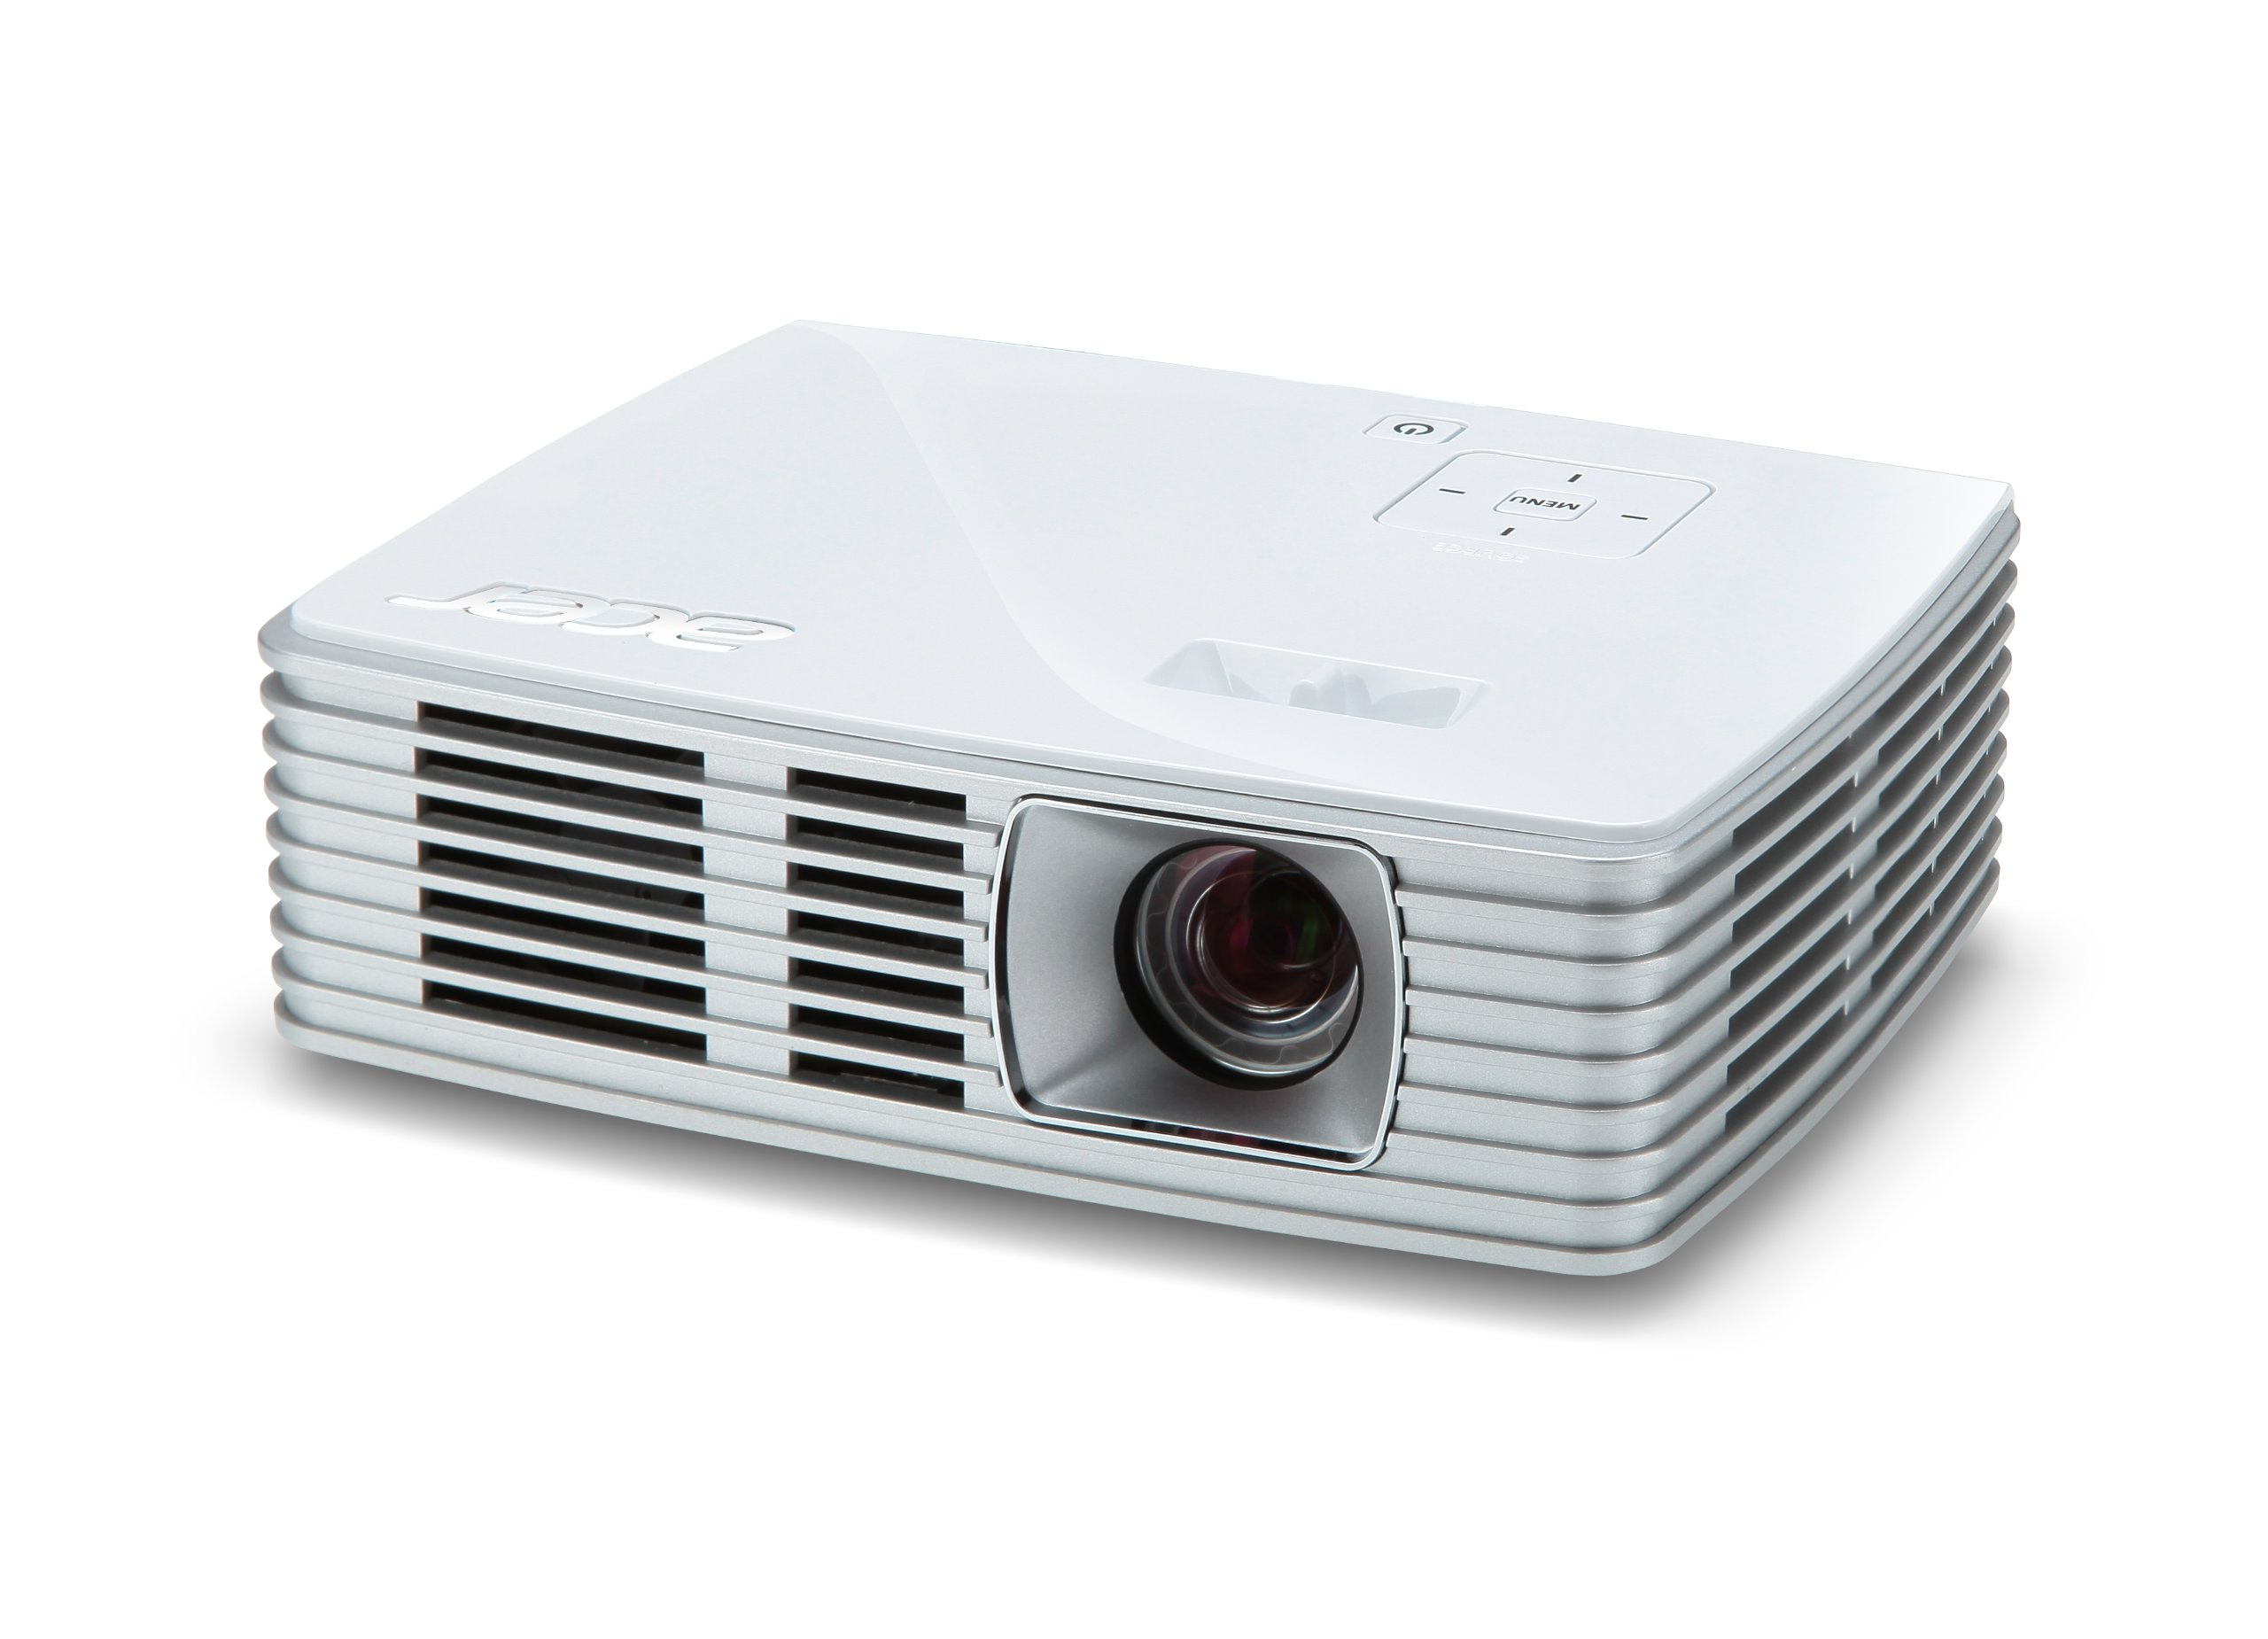 Acer K132 WXGA DLP LED Projector, 600 Lumens, HDMI/MHL, White by Acer (Image #2)